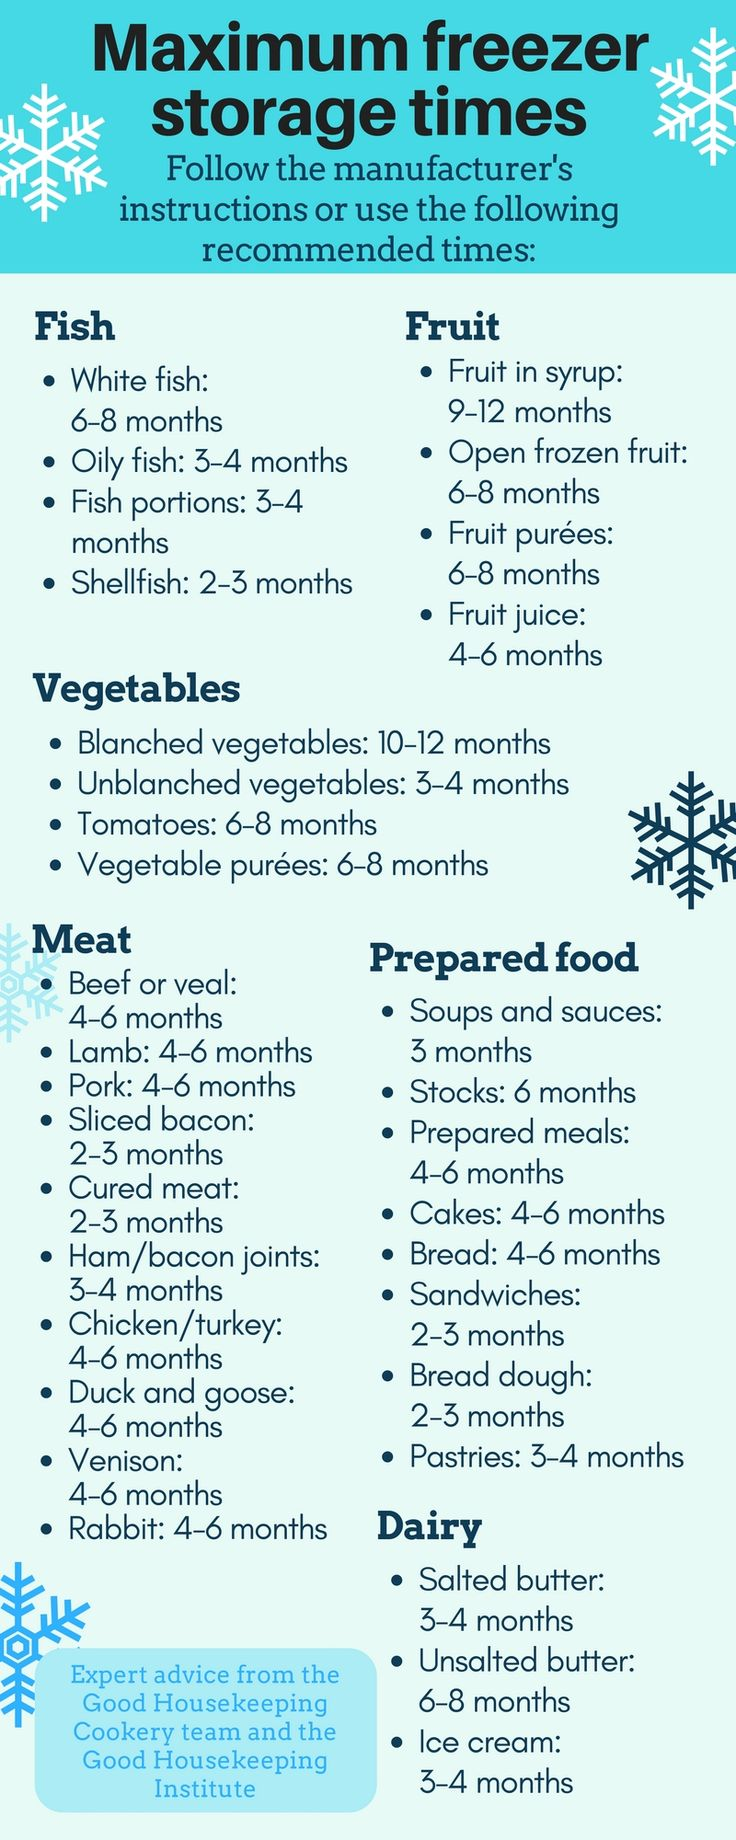 How long should you keep food in your freezer? Food